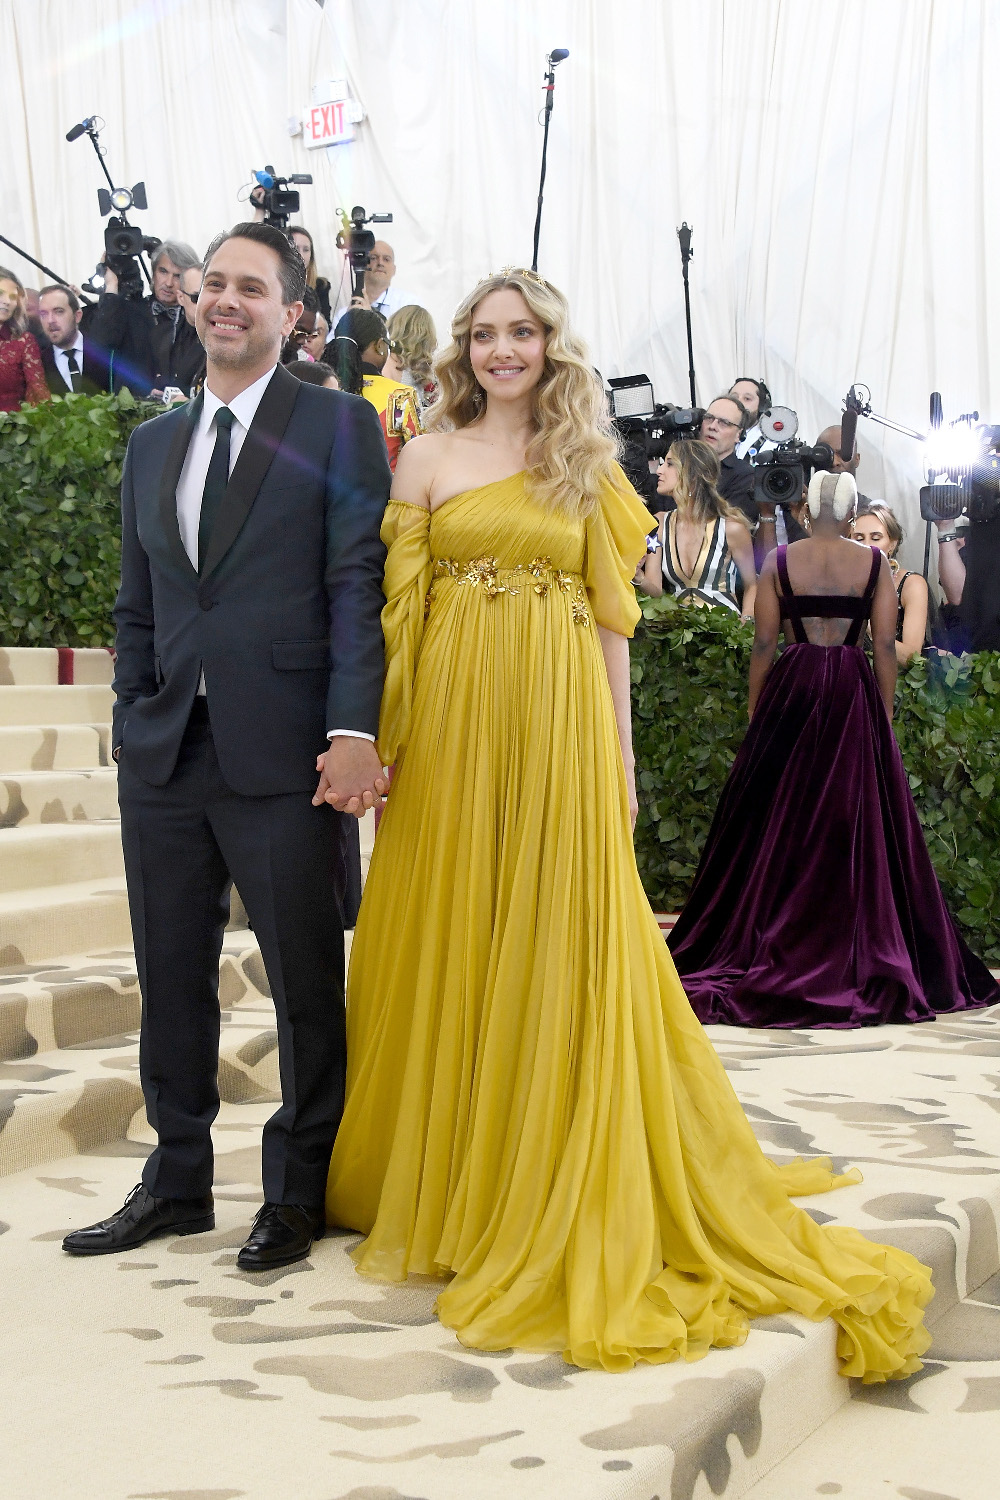 NEW YORK, NY - MAY 07:  Actors Thomas Sadoski and Amanda Seyfried attend the Heavenly Bodies: Fashion & The Catholic Imagination Costume Institute Gala at The Metropolitan Museum of Art on May 7, 2018 in New York City.  (Photo by Noam Galai/Getty Images for New York Magazine)